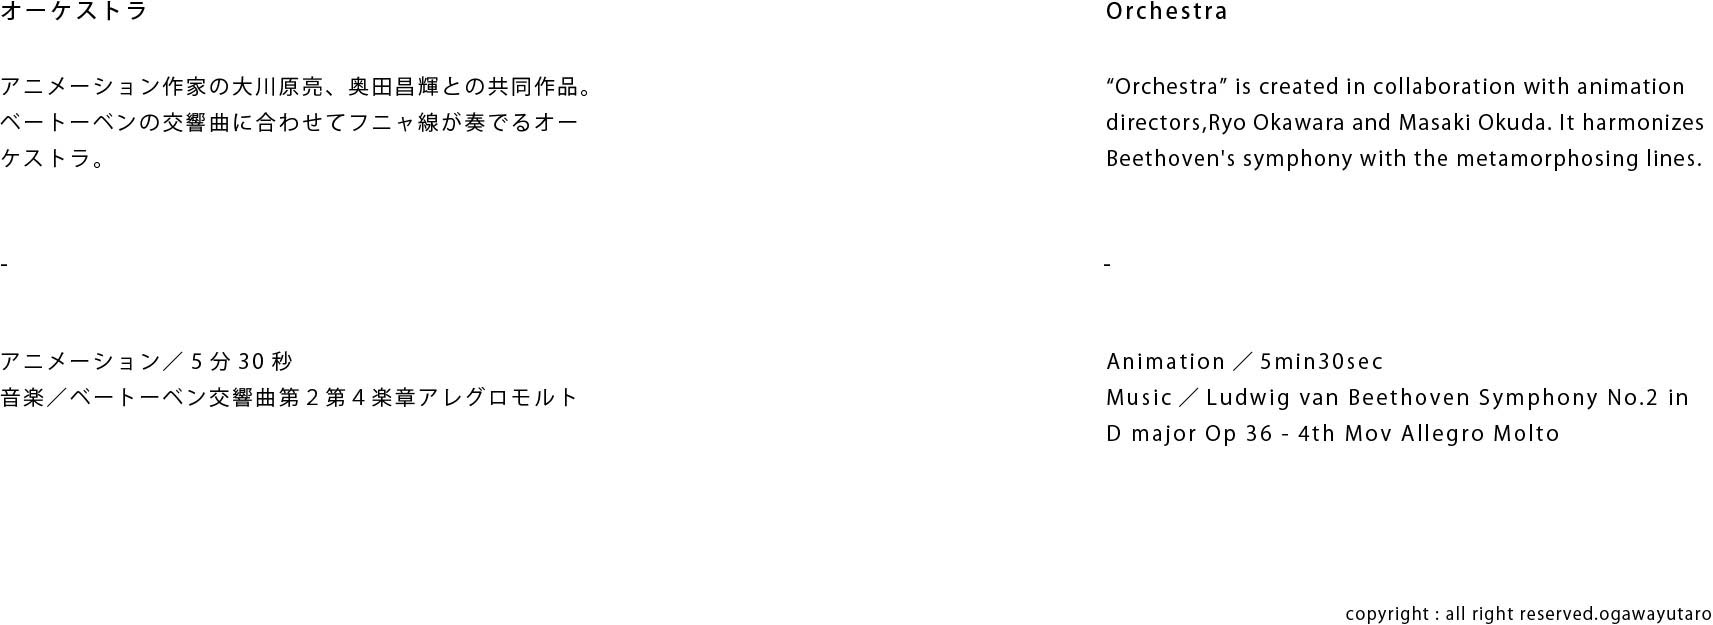 orchestra_text